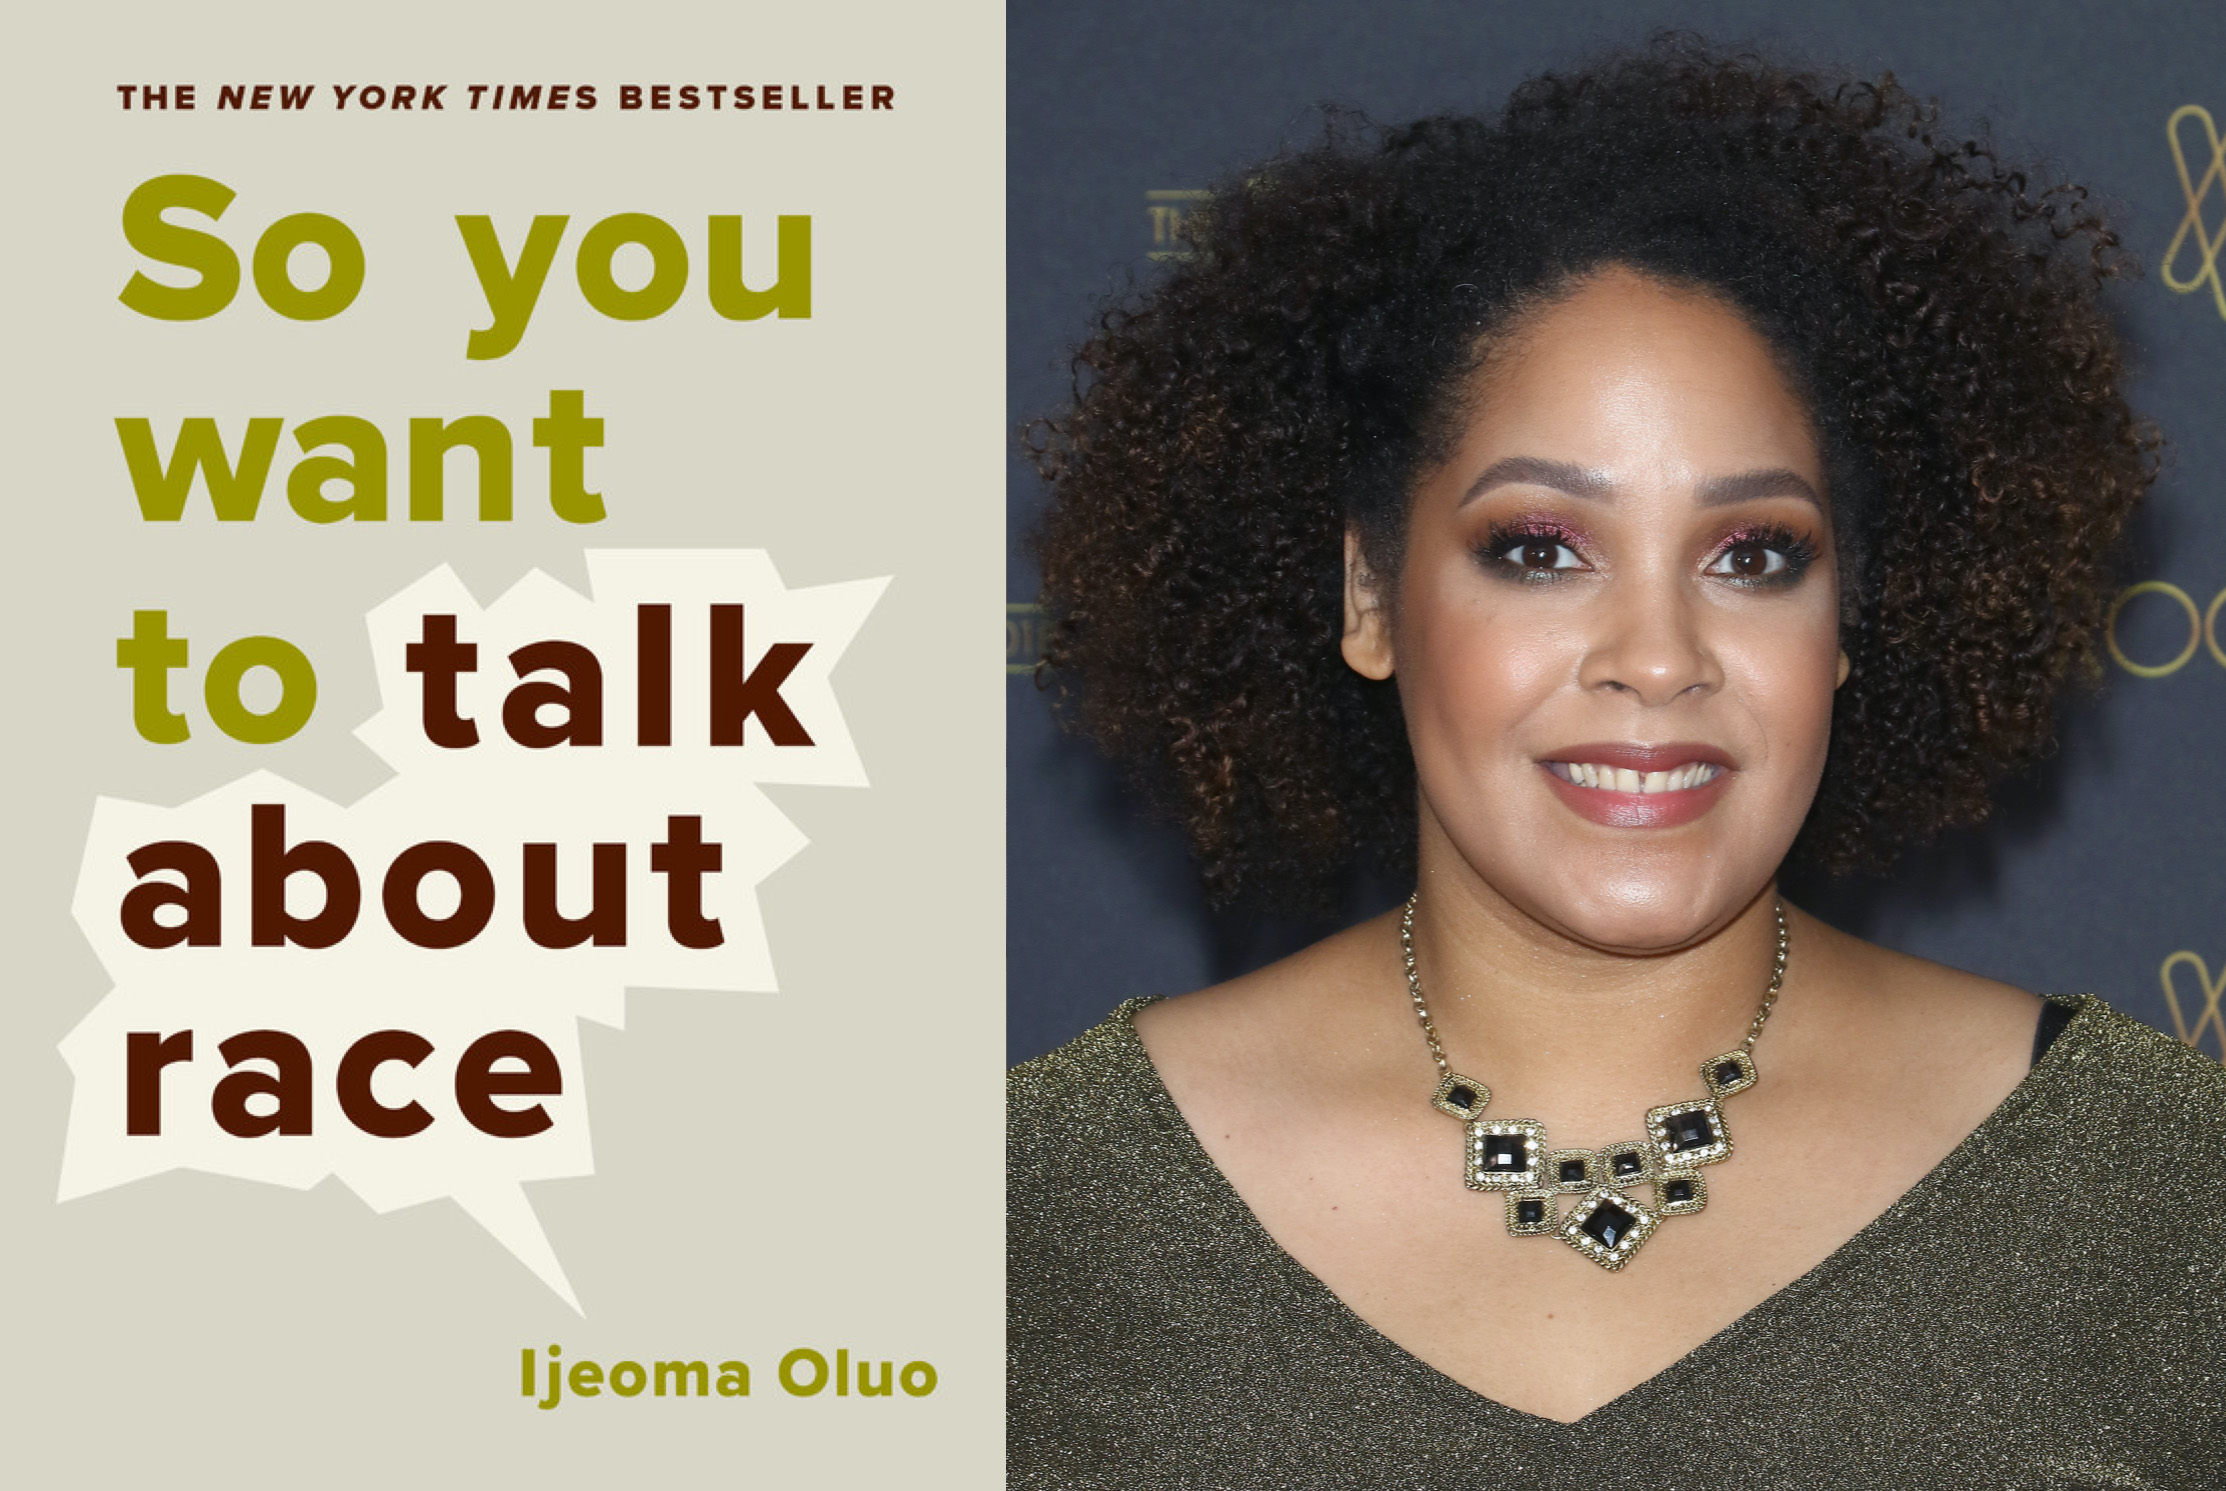 So You Want to Talk About Race: An Evening In Conversation with Ijeoma Oluo